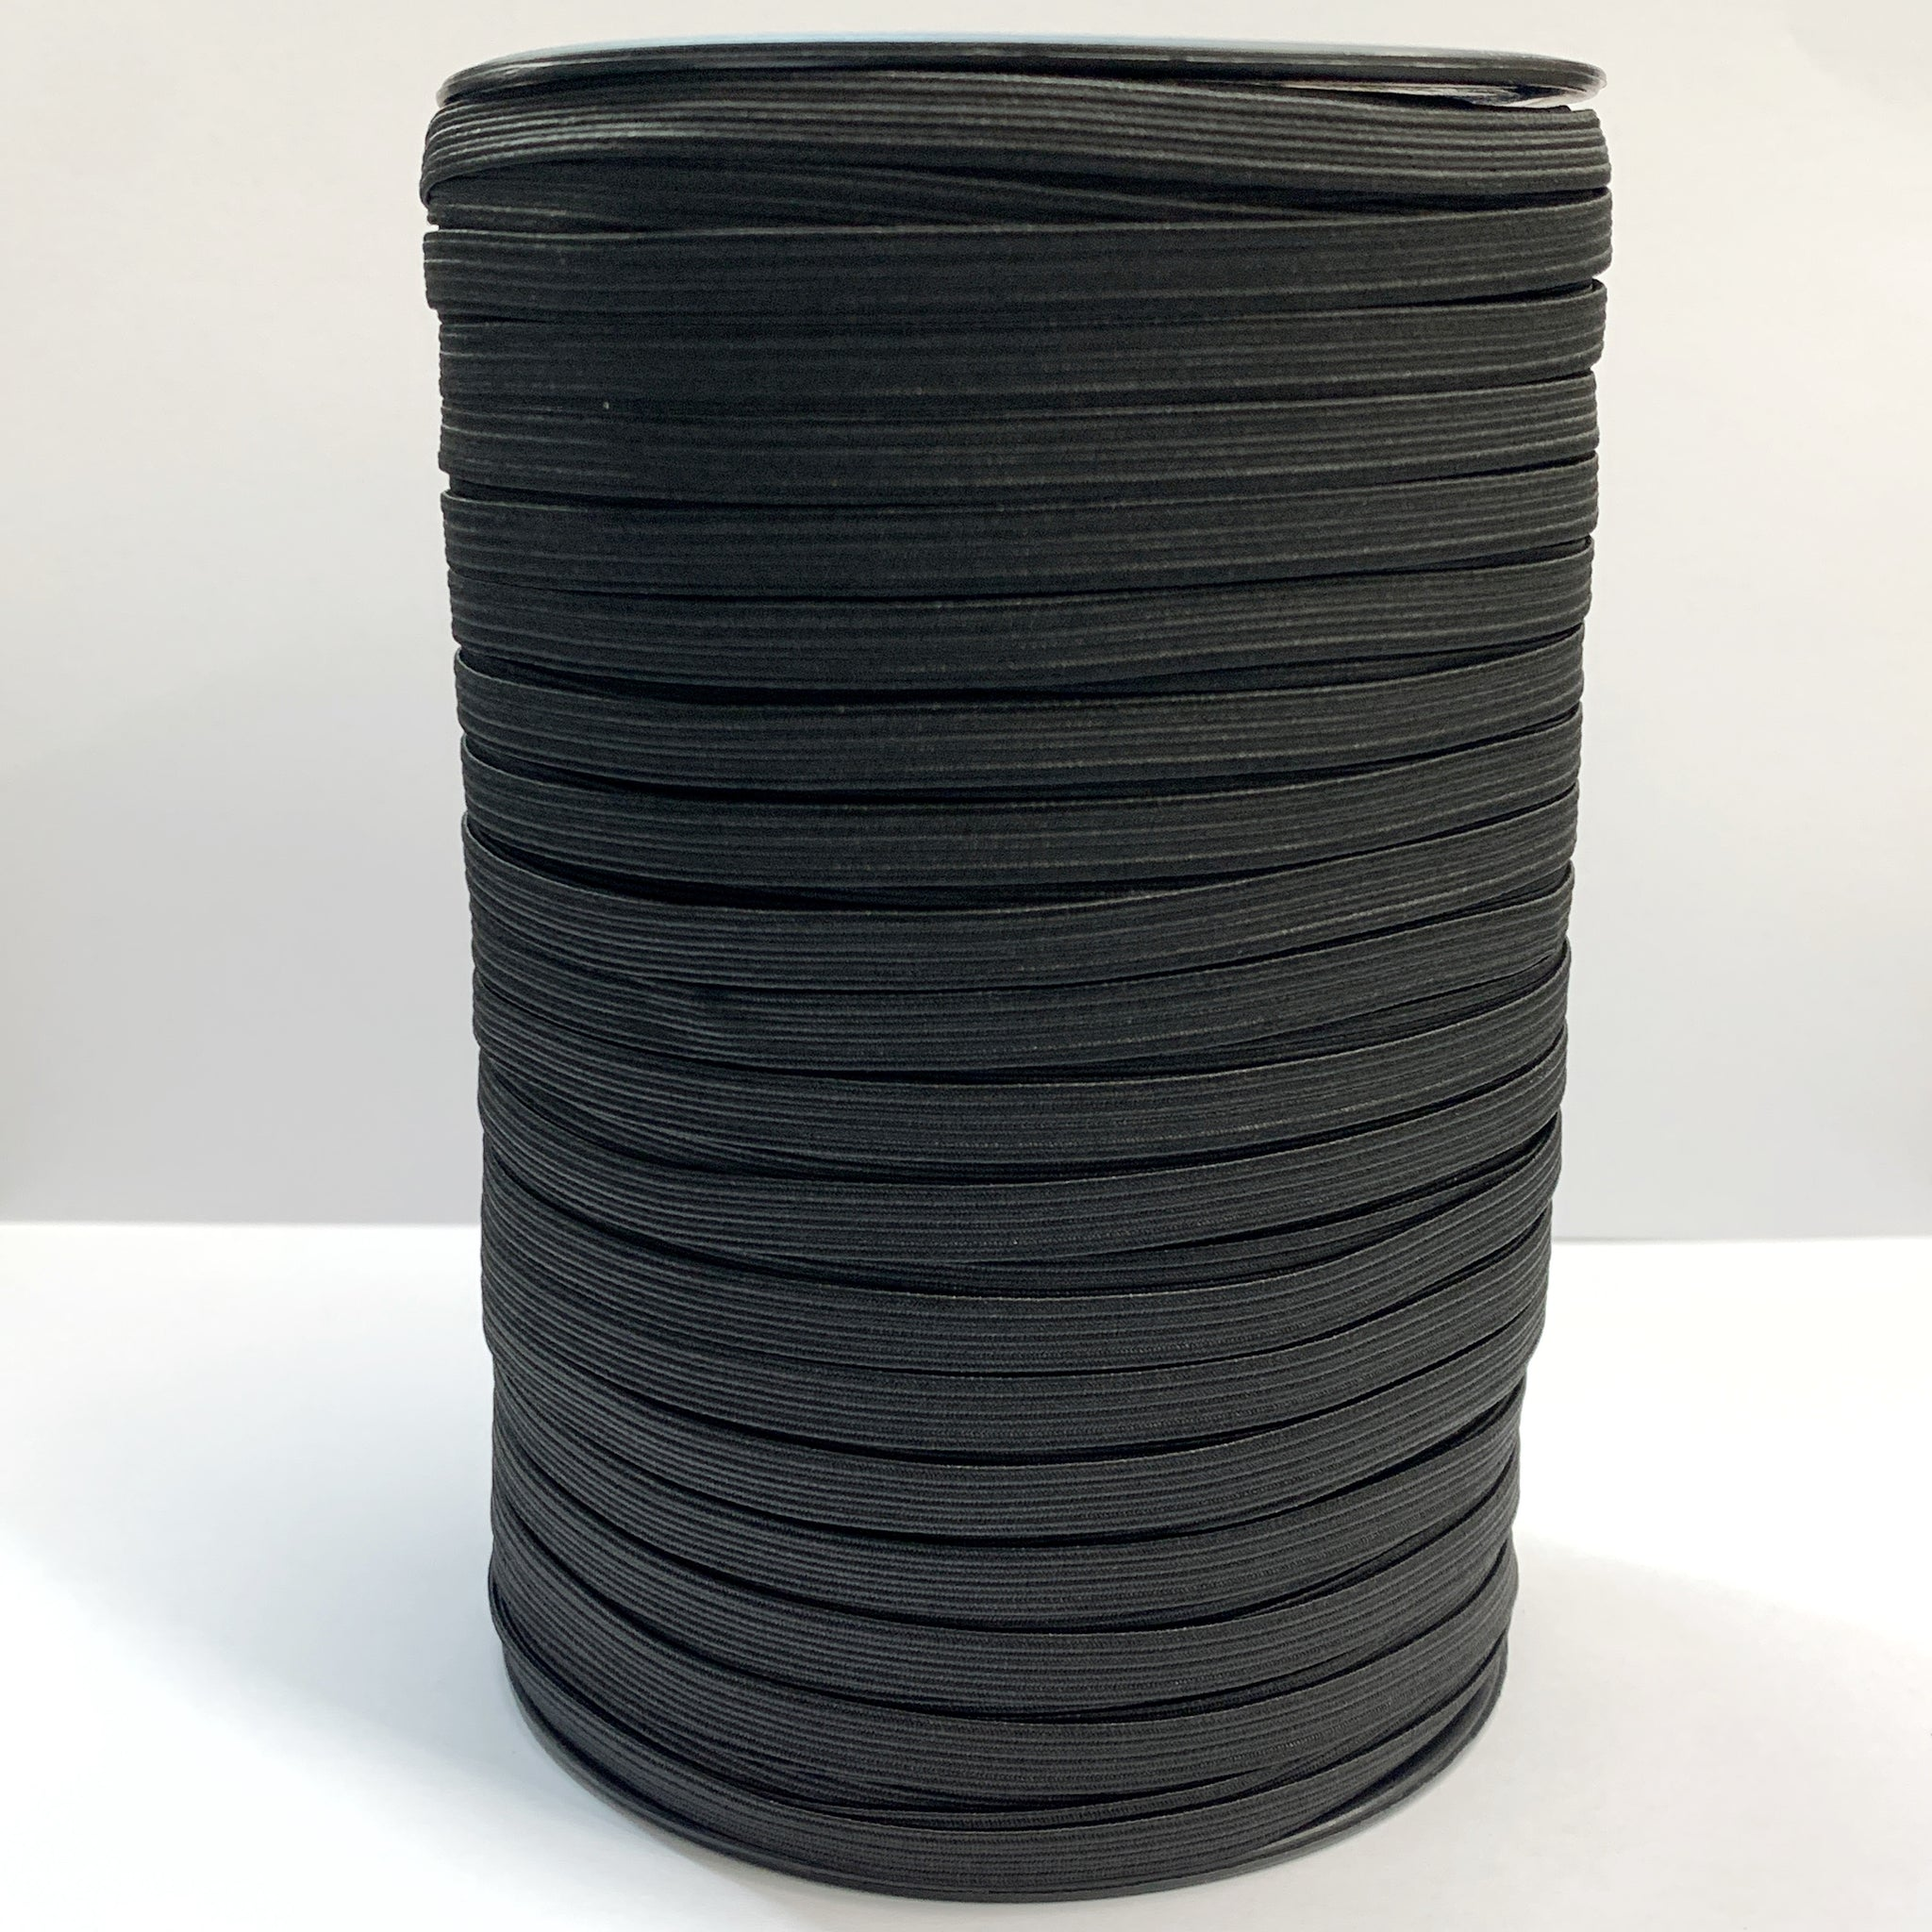 "1/4"" Braided Elastic - Black or Optic White - 1 Roll (200 Yards)"